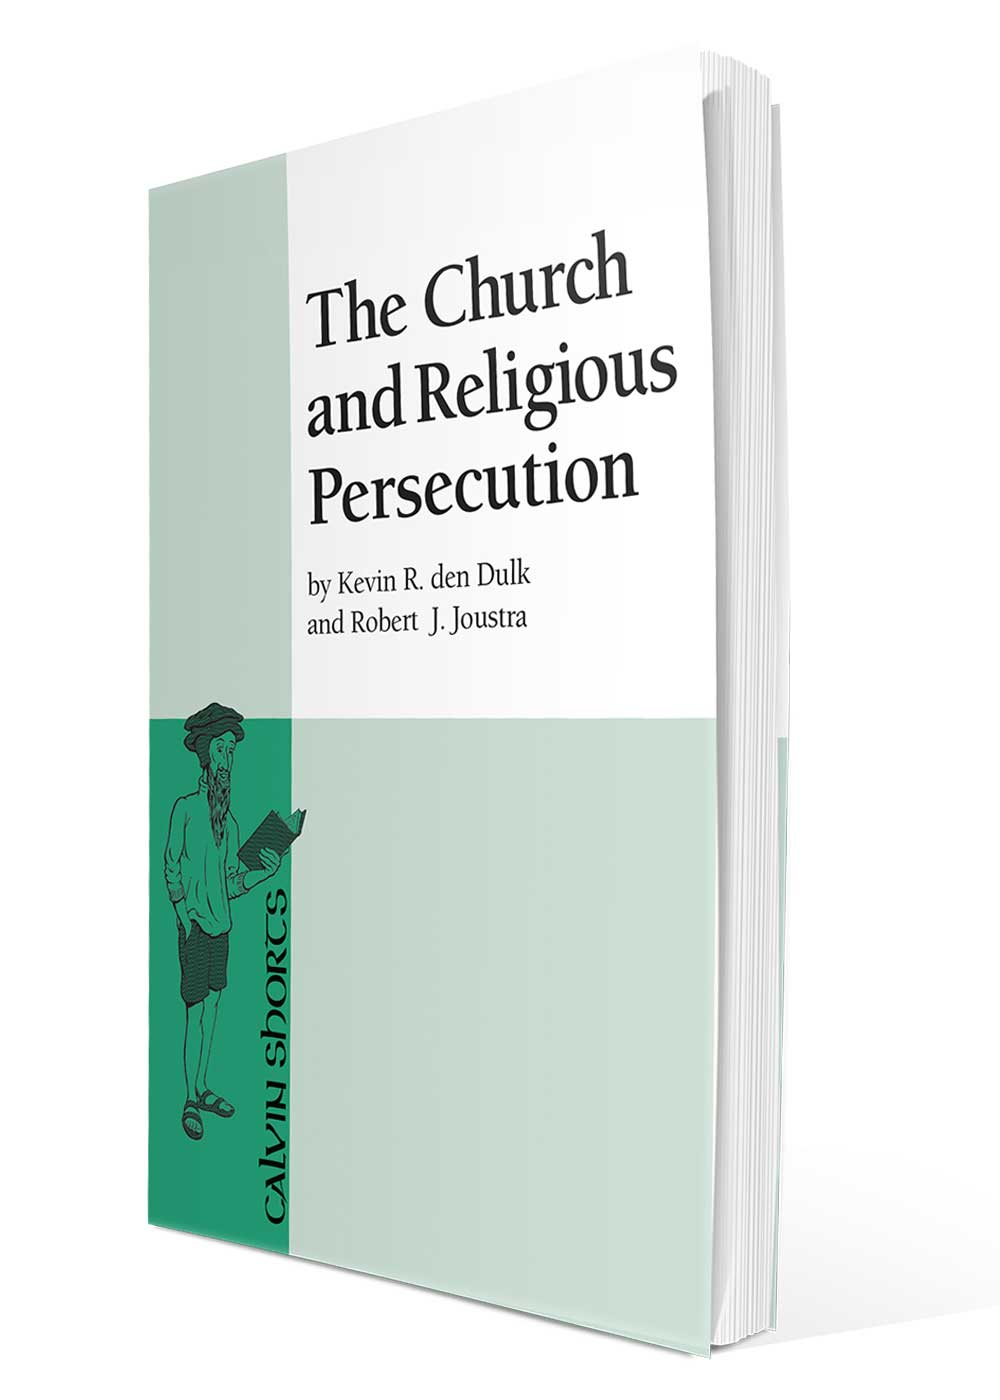 The Church and Religious Persecution, a short by Kevin R. den Dulk and Robert J. Joustra.